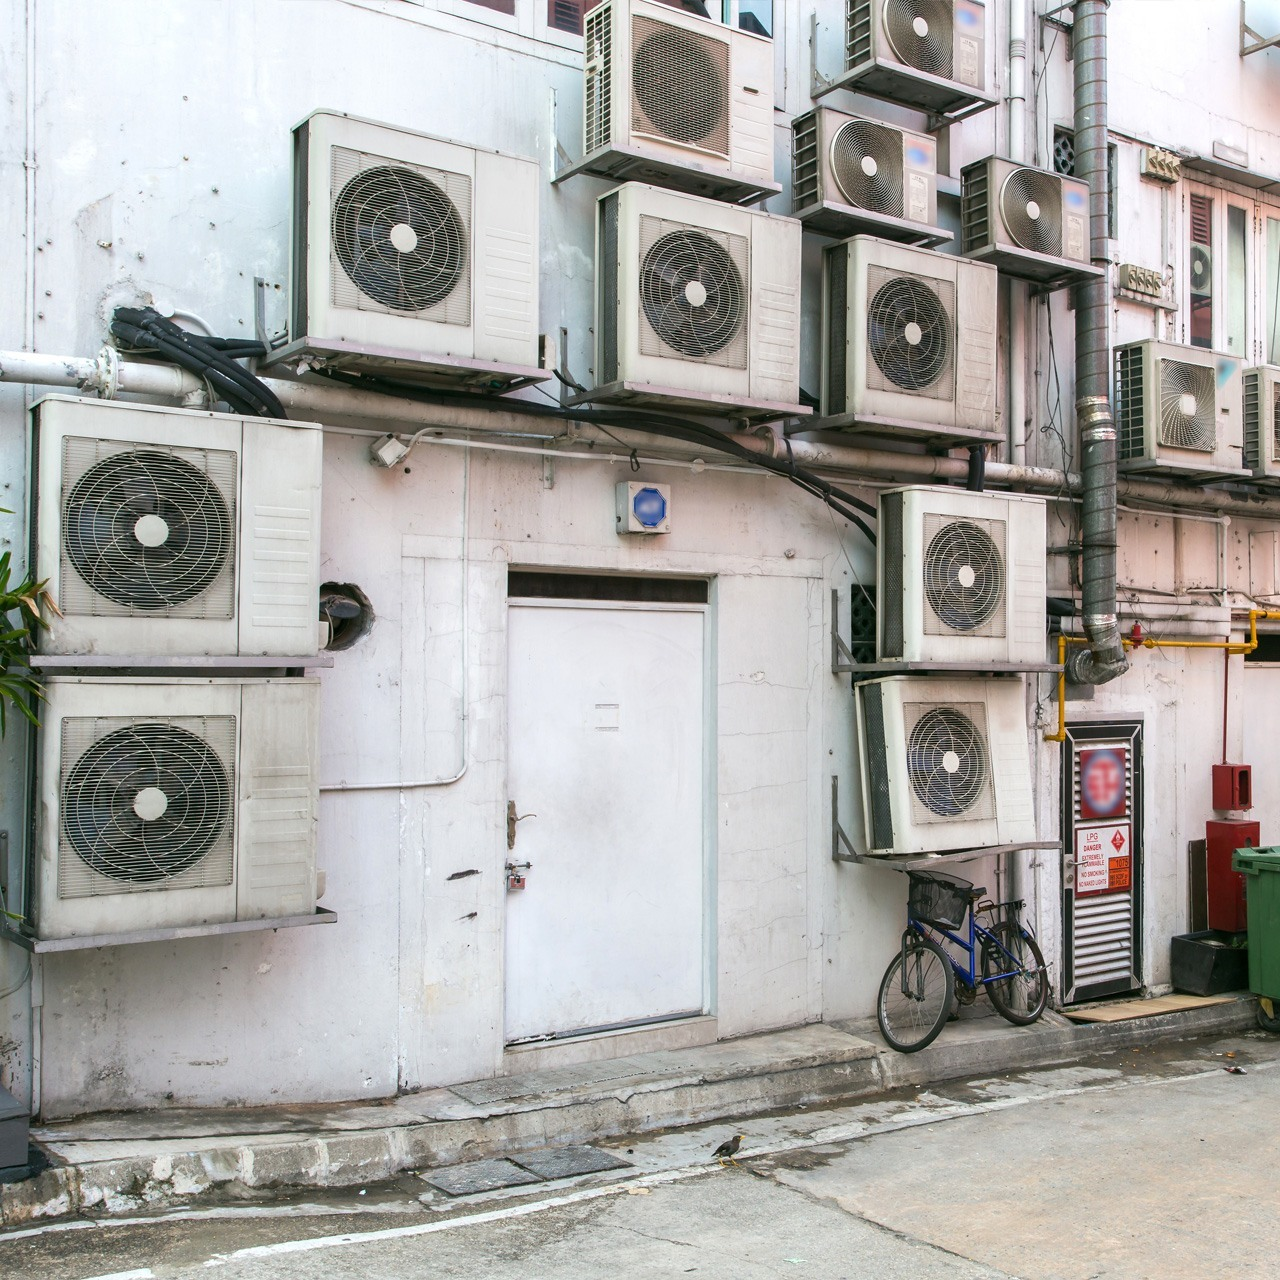 Hacking air conditioners leads to the whole block's blackout